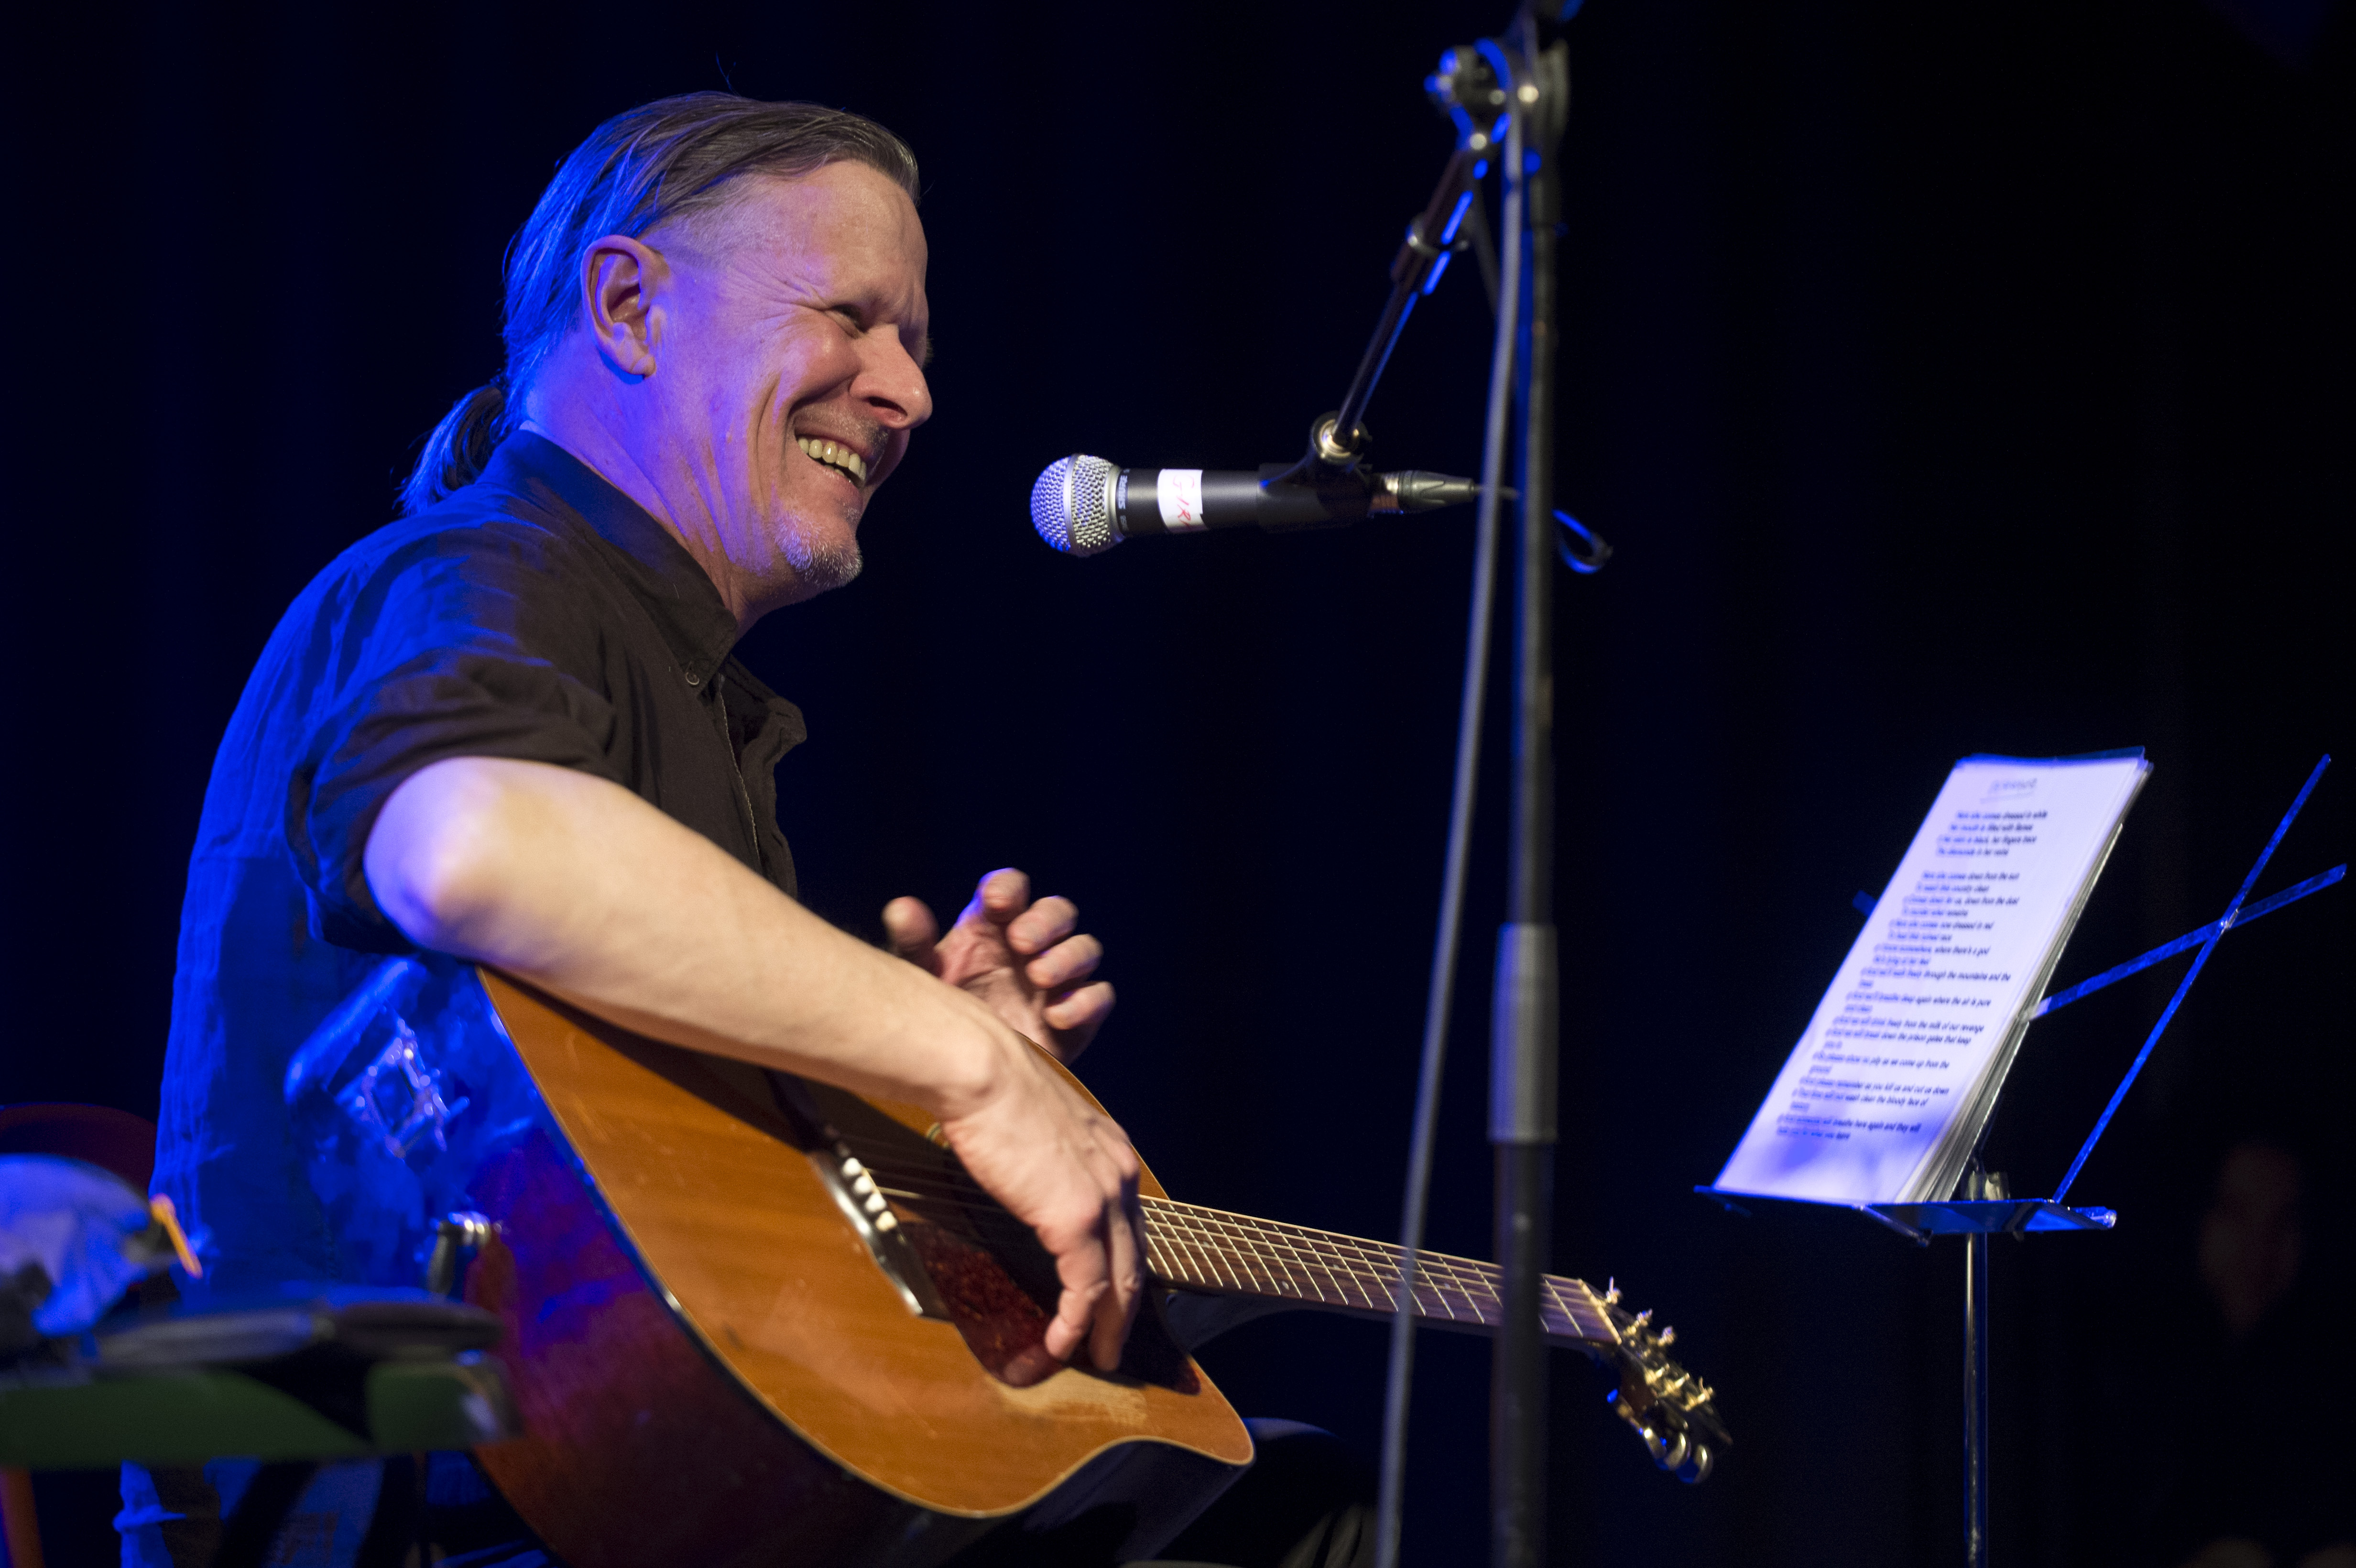 BARCELONA, SPAIN - MARCH 08: Michael Gira performs on stage at Sala Apolo on March 8, 2014 in Barcelona, Spain. (Photo by Jor